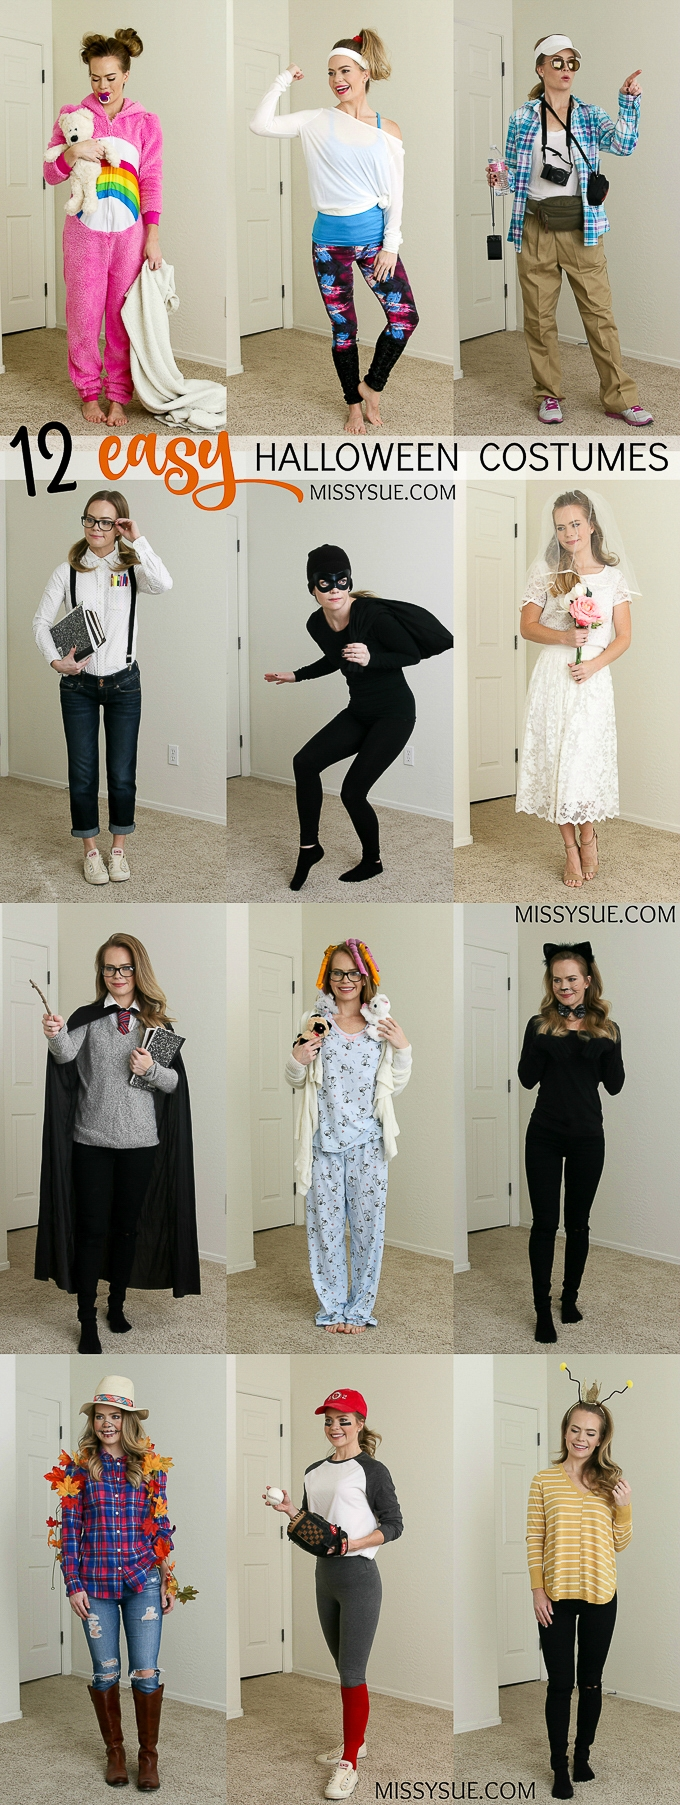 12 Easy Last-Minute Halloween Costumes